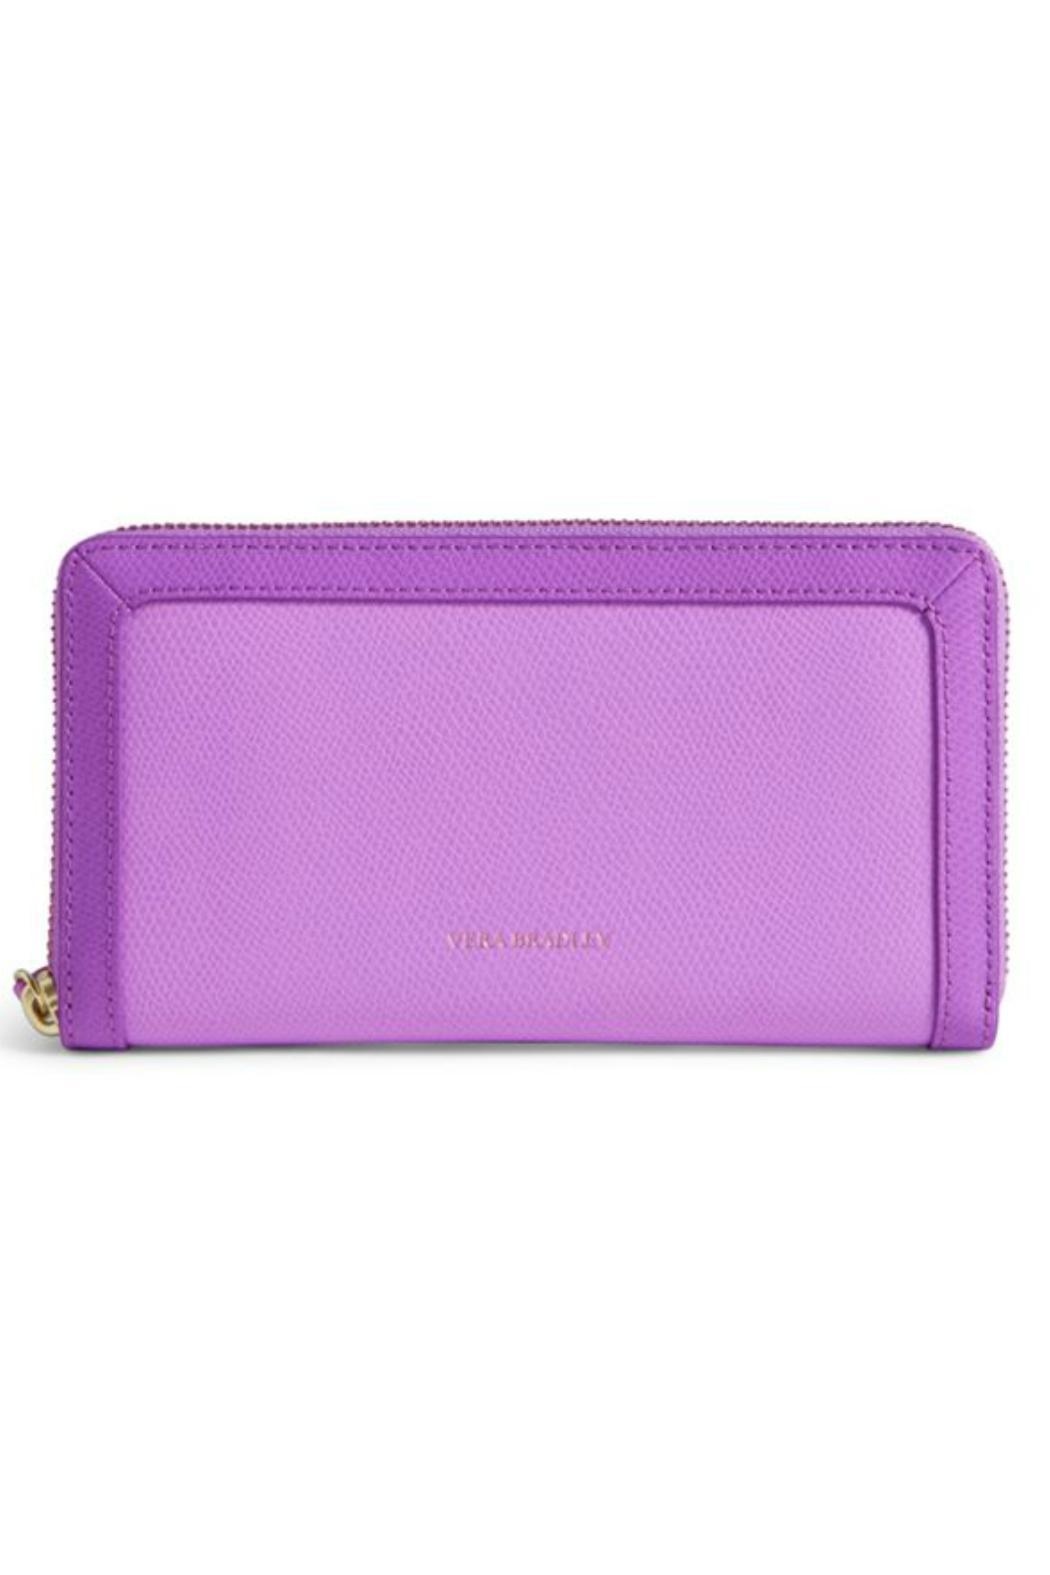 Vera Bradley Leather Lilac Wallet - Main Image